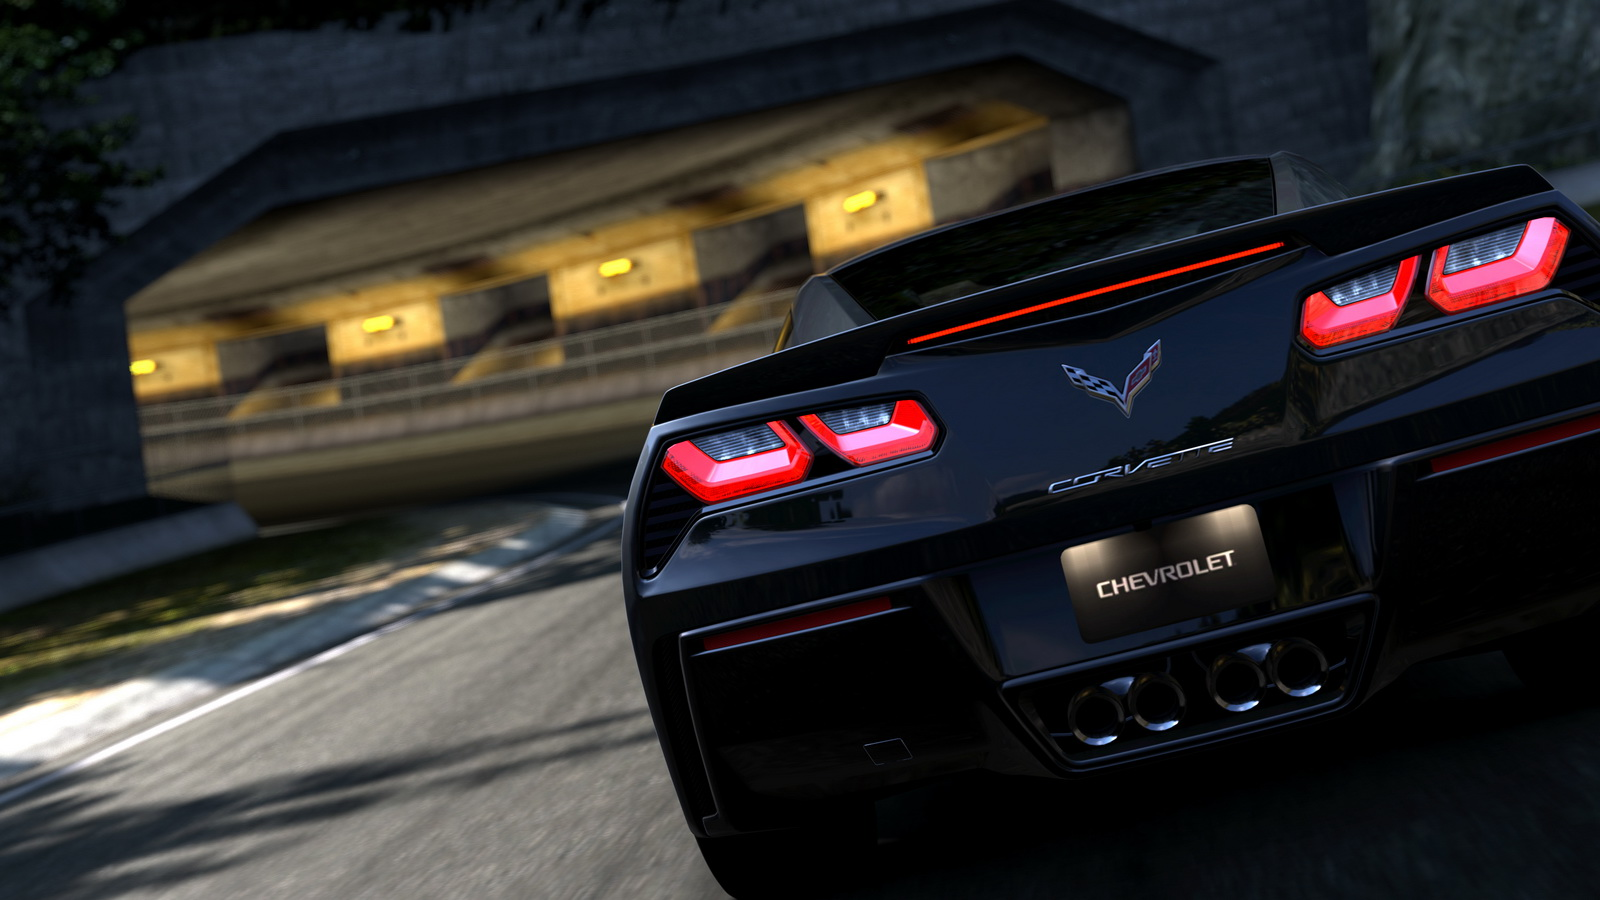 All six previous generations of the Corvette have been available to 1600x900